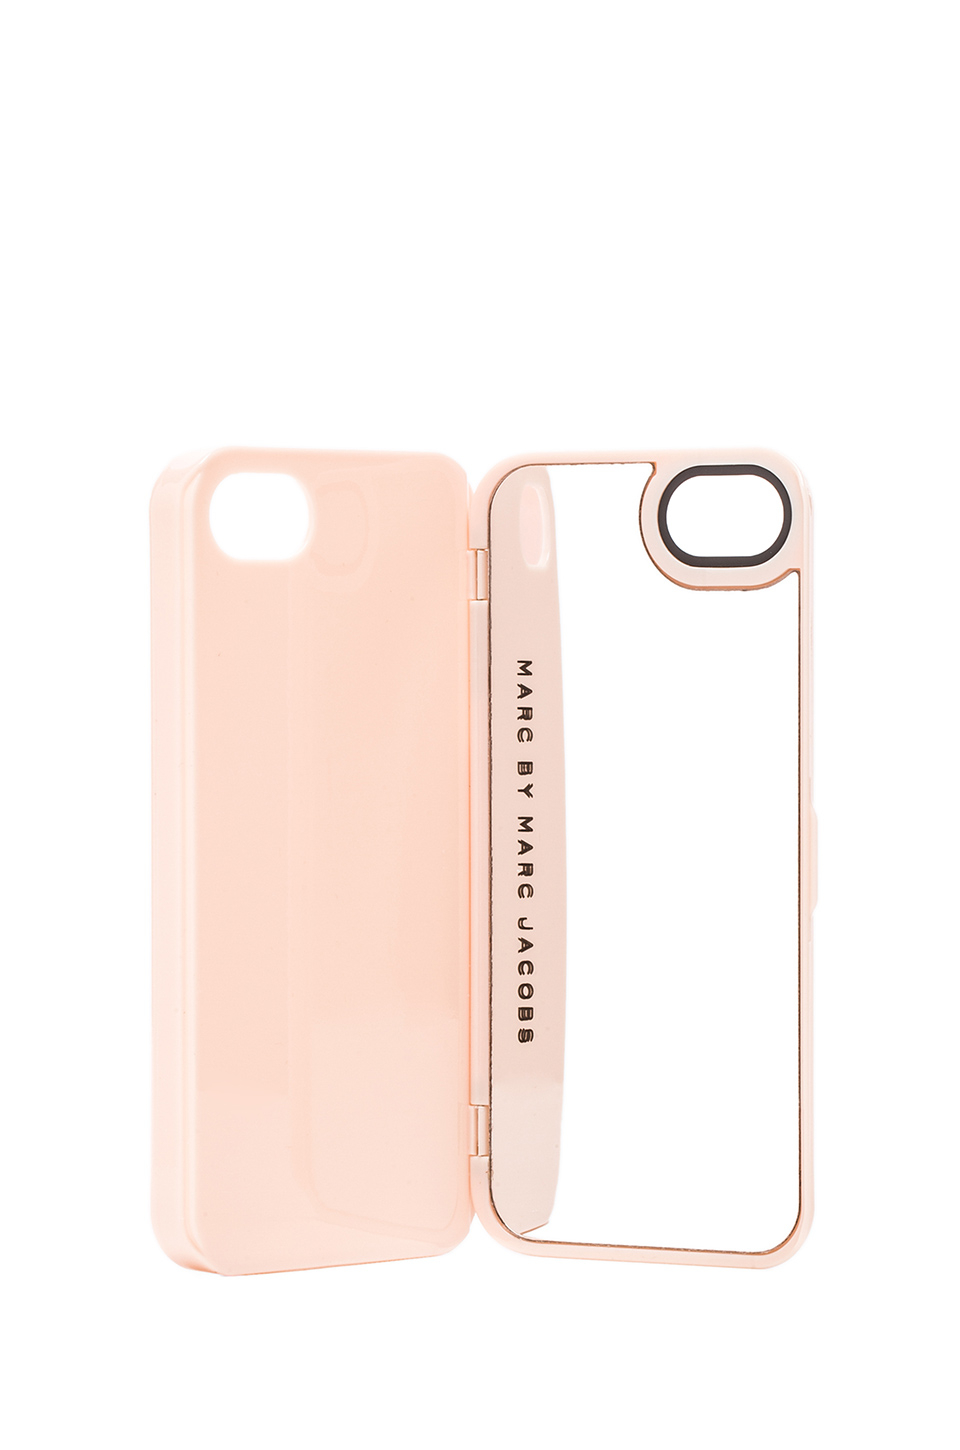 marc by marc jacobs pink standard supply compact mirror iphone case product 1 18432722 3 321725577 normal